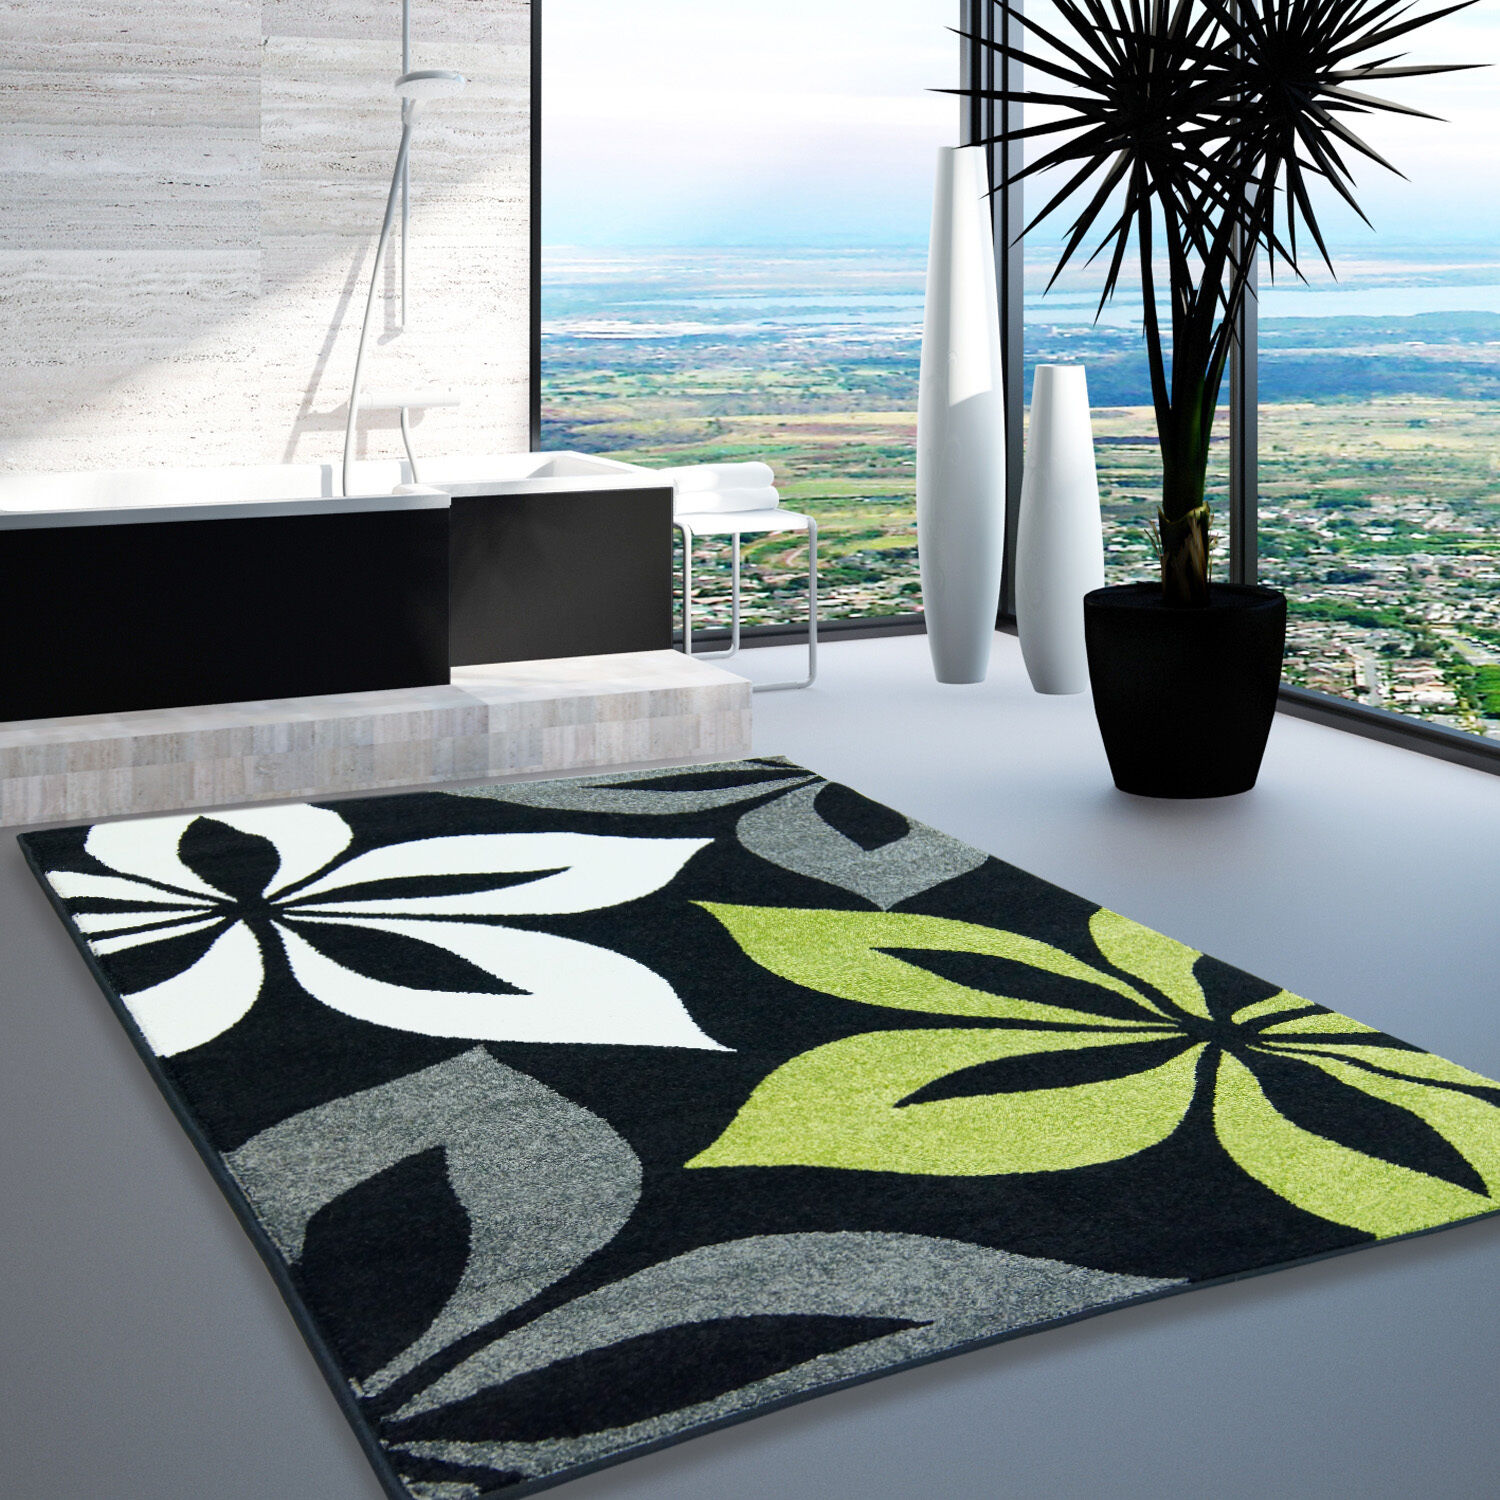 Tapis salon gris design maison design for Salon gris design